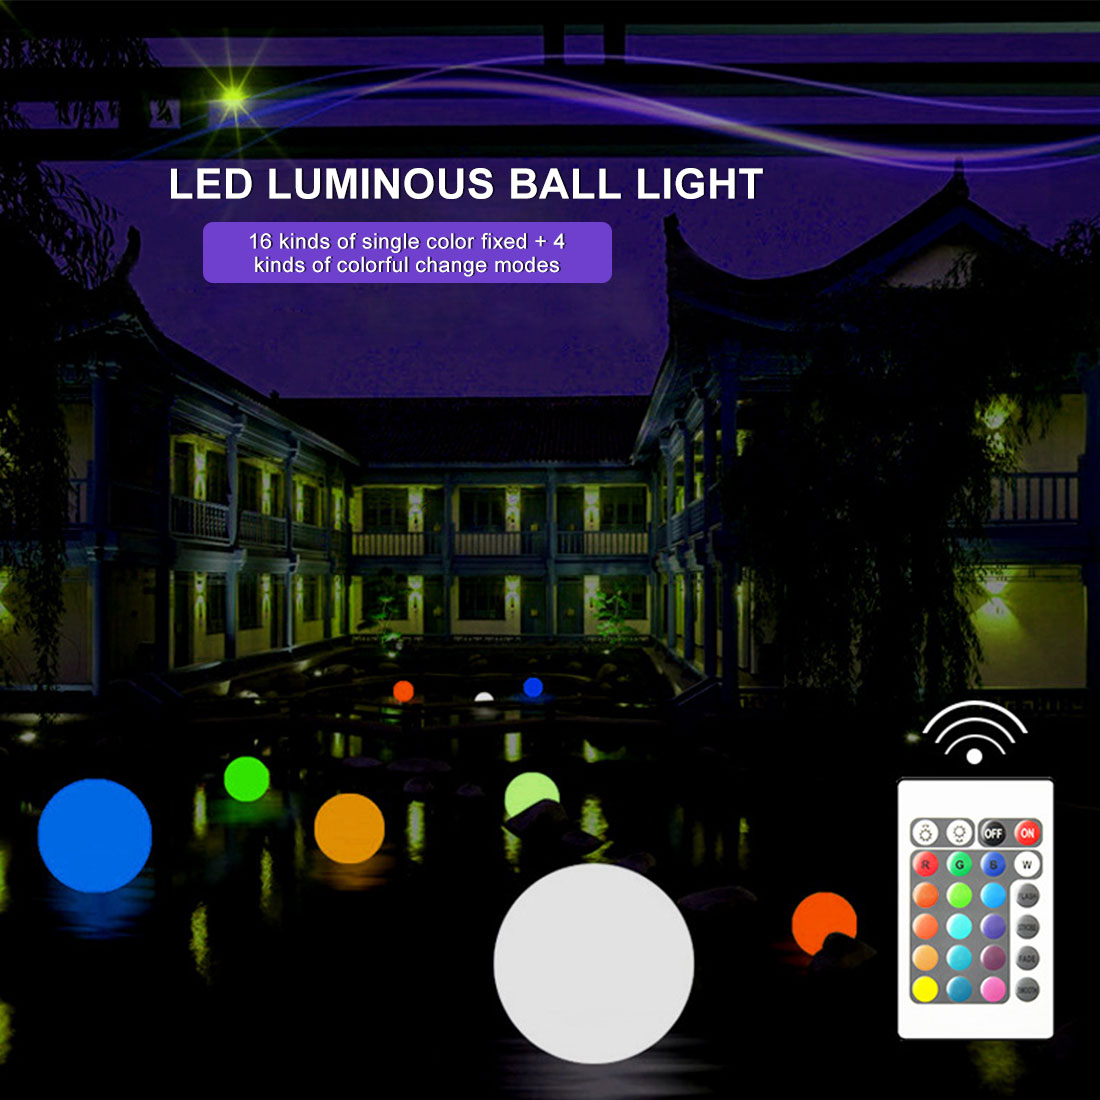 thrisdar 16 color ip68 globe ball garden landscape lawn pathway deck light remote control led swimming pool floating ball light LED Luminous Ball Outdoor Decorative Night Light Spherical Lawn Landscape Light Stage Remote Control Colorful Garden Pool Light